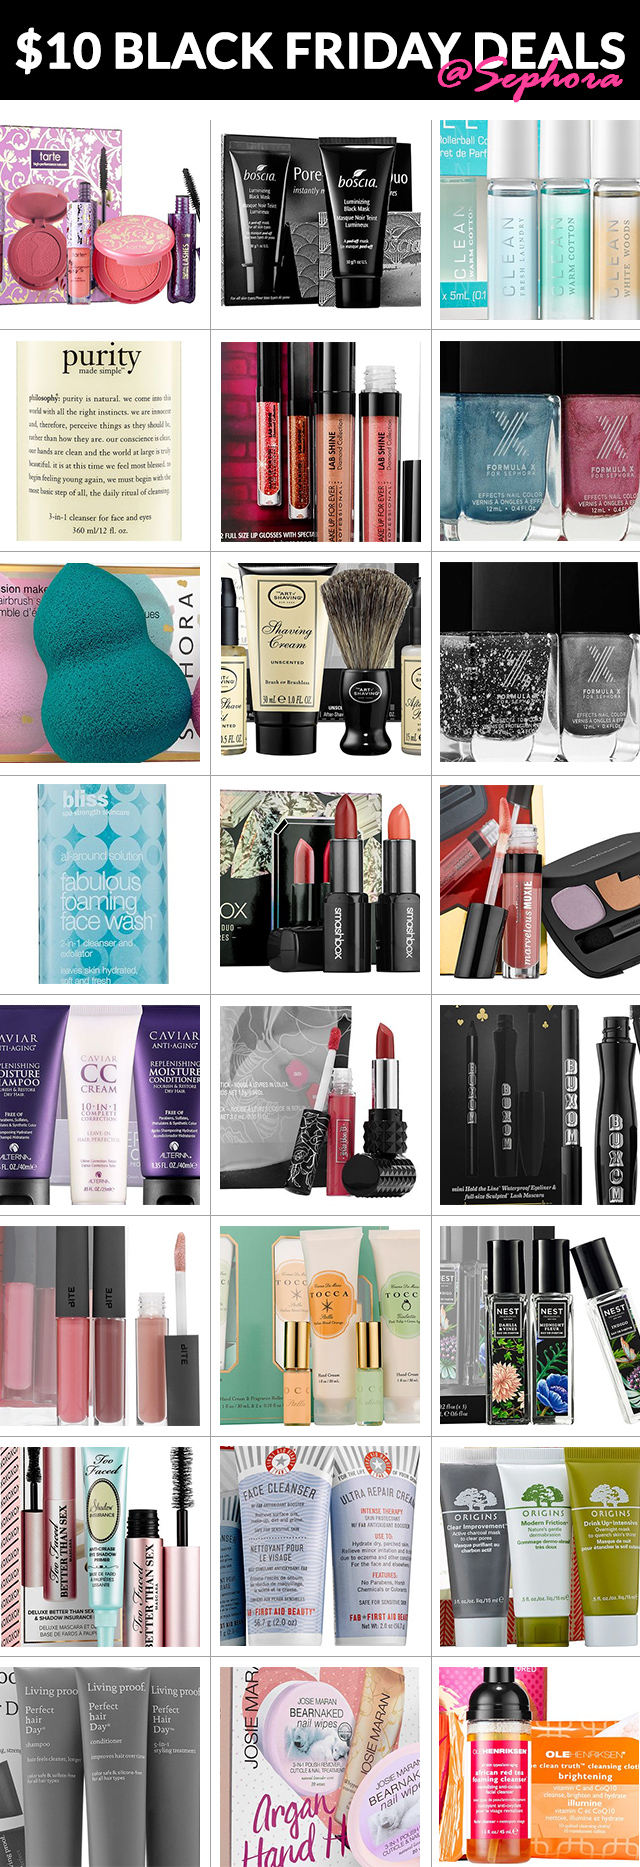 Sephora $10 Black Friday Deals